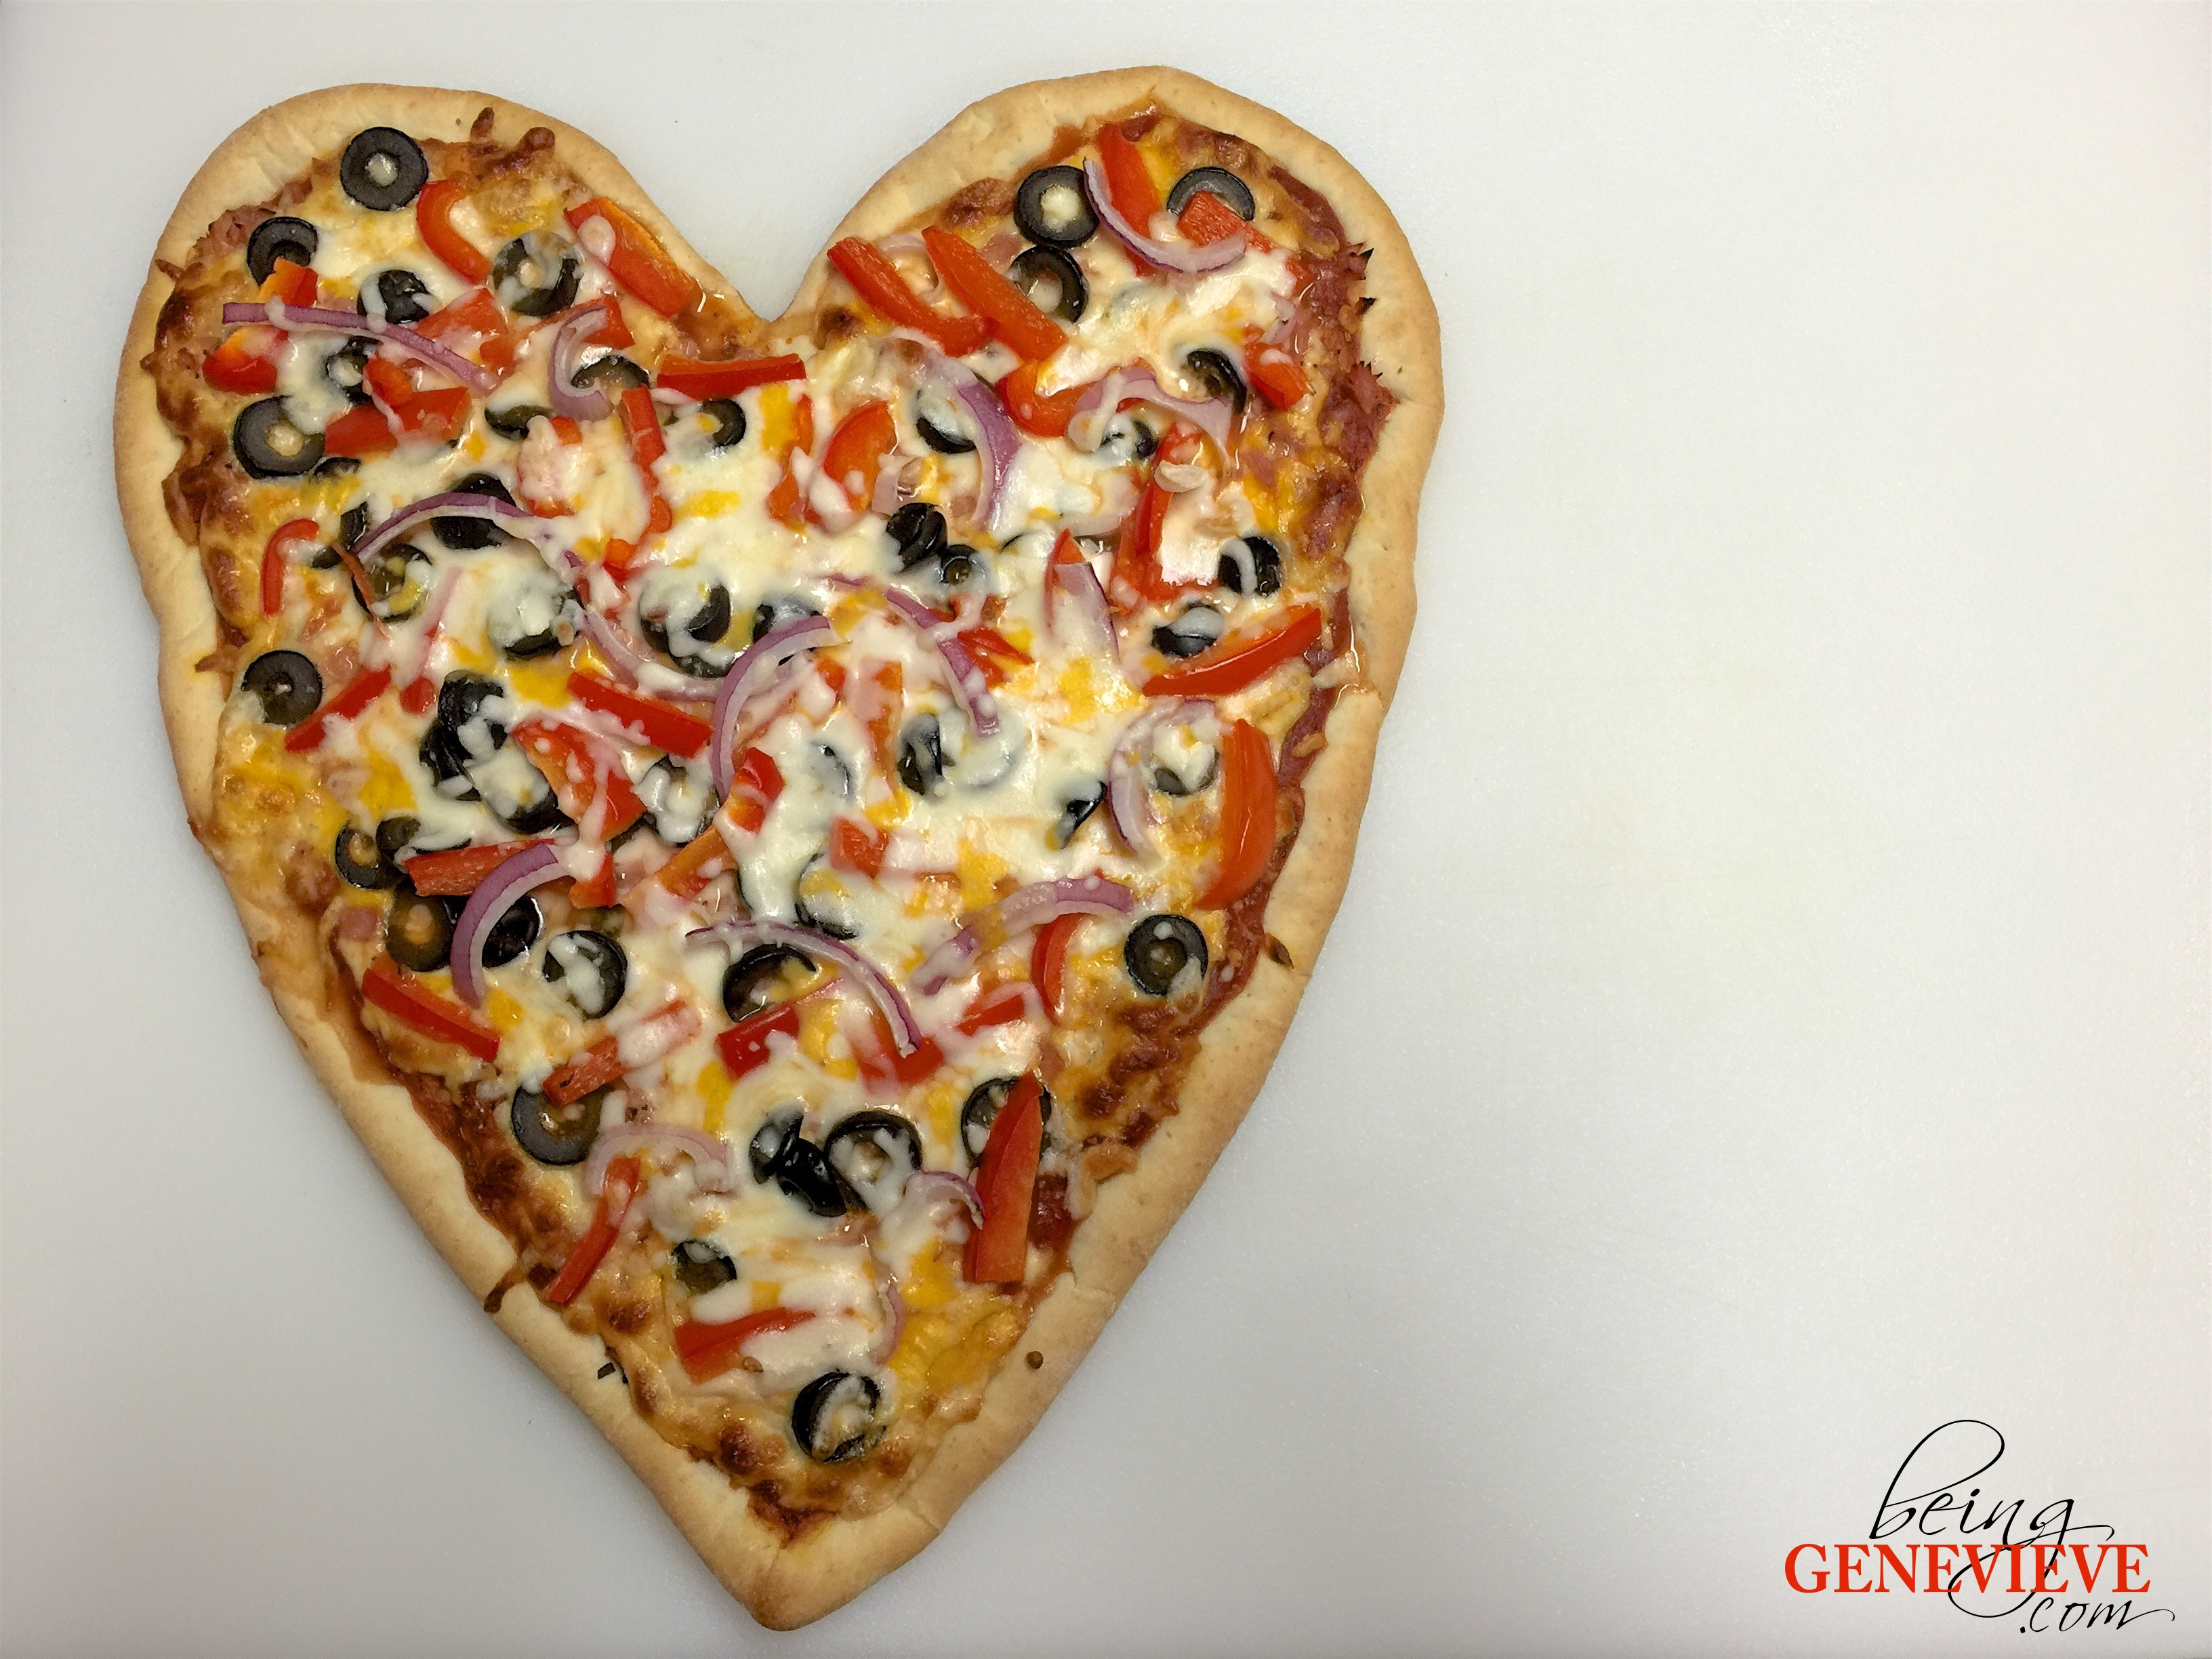 Heart Pizza Being Genevieve